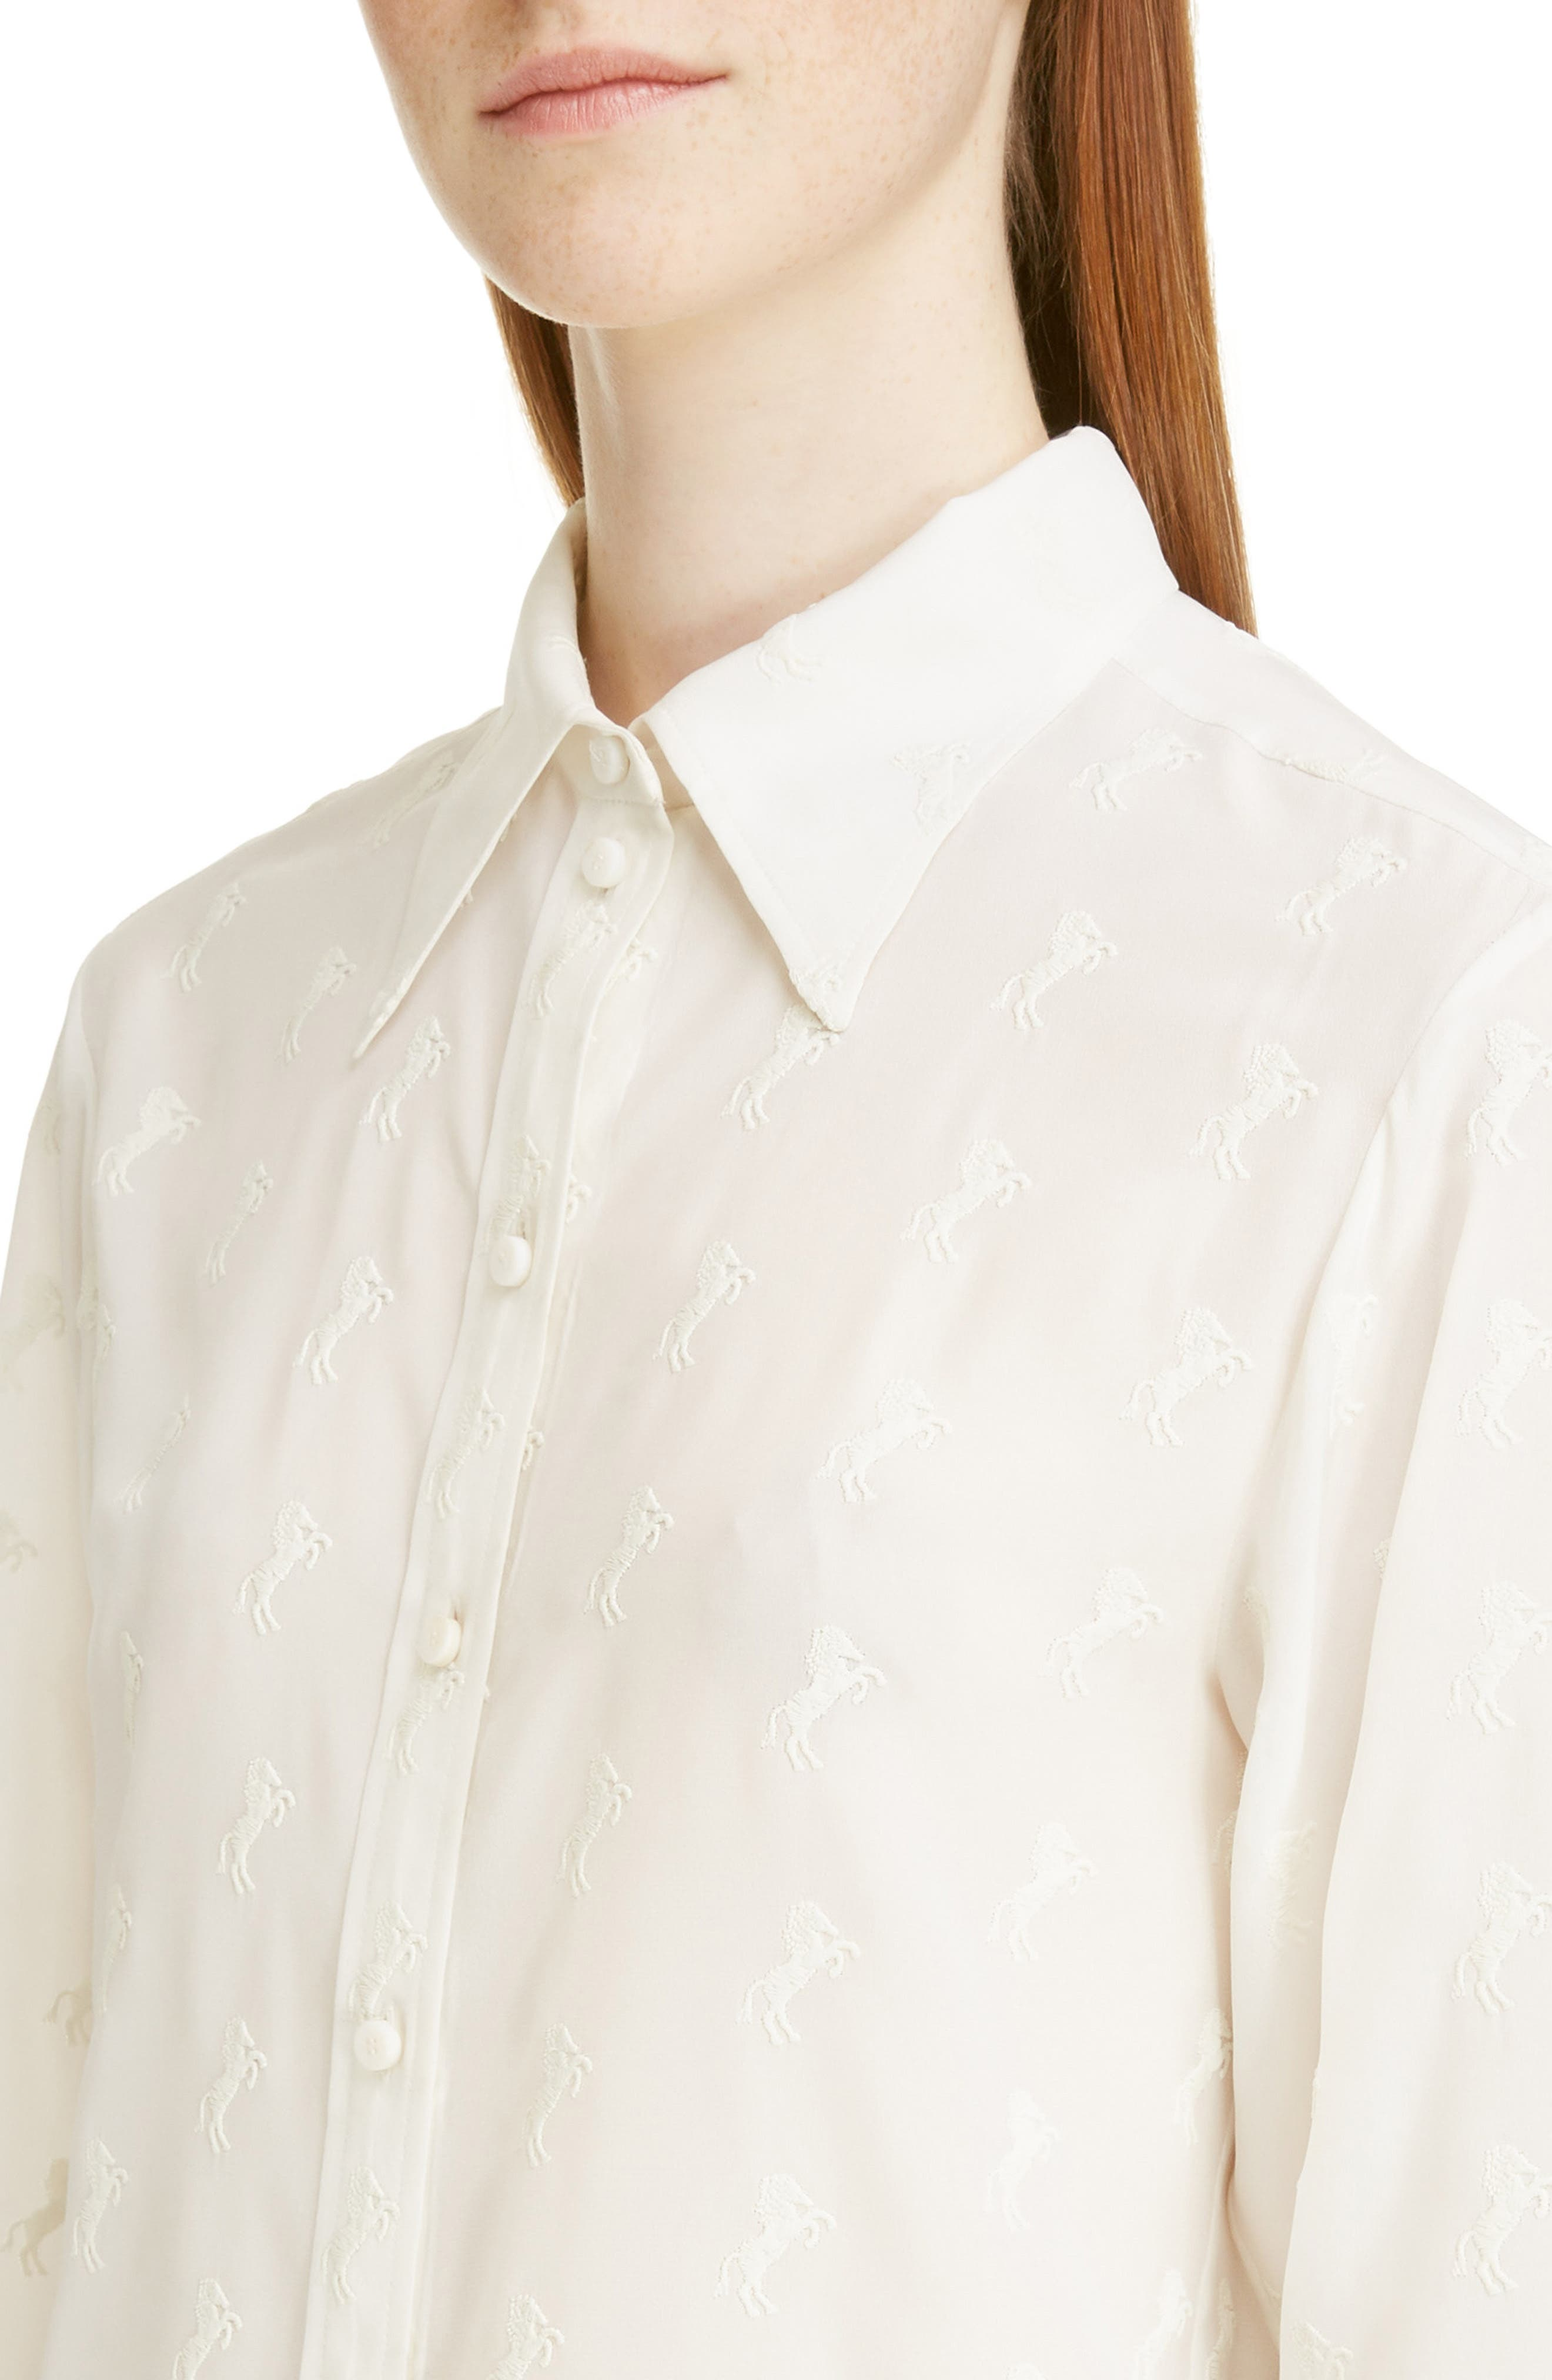 Horse Embroidered Crêpe de Chine Shirt,                             Alternate thumbnail 4, color,                             ICONIC MILK